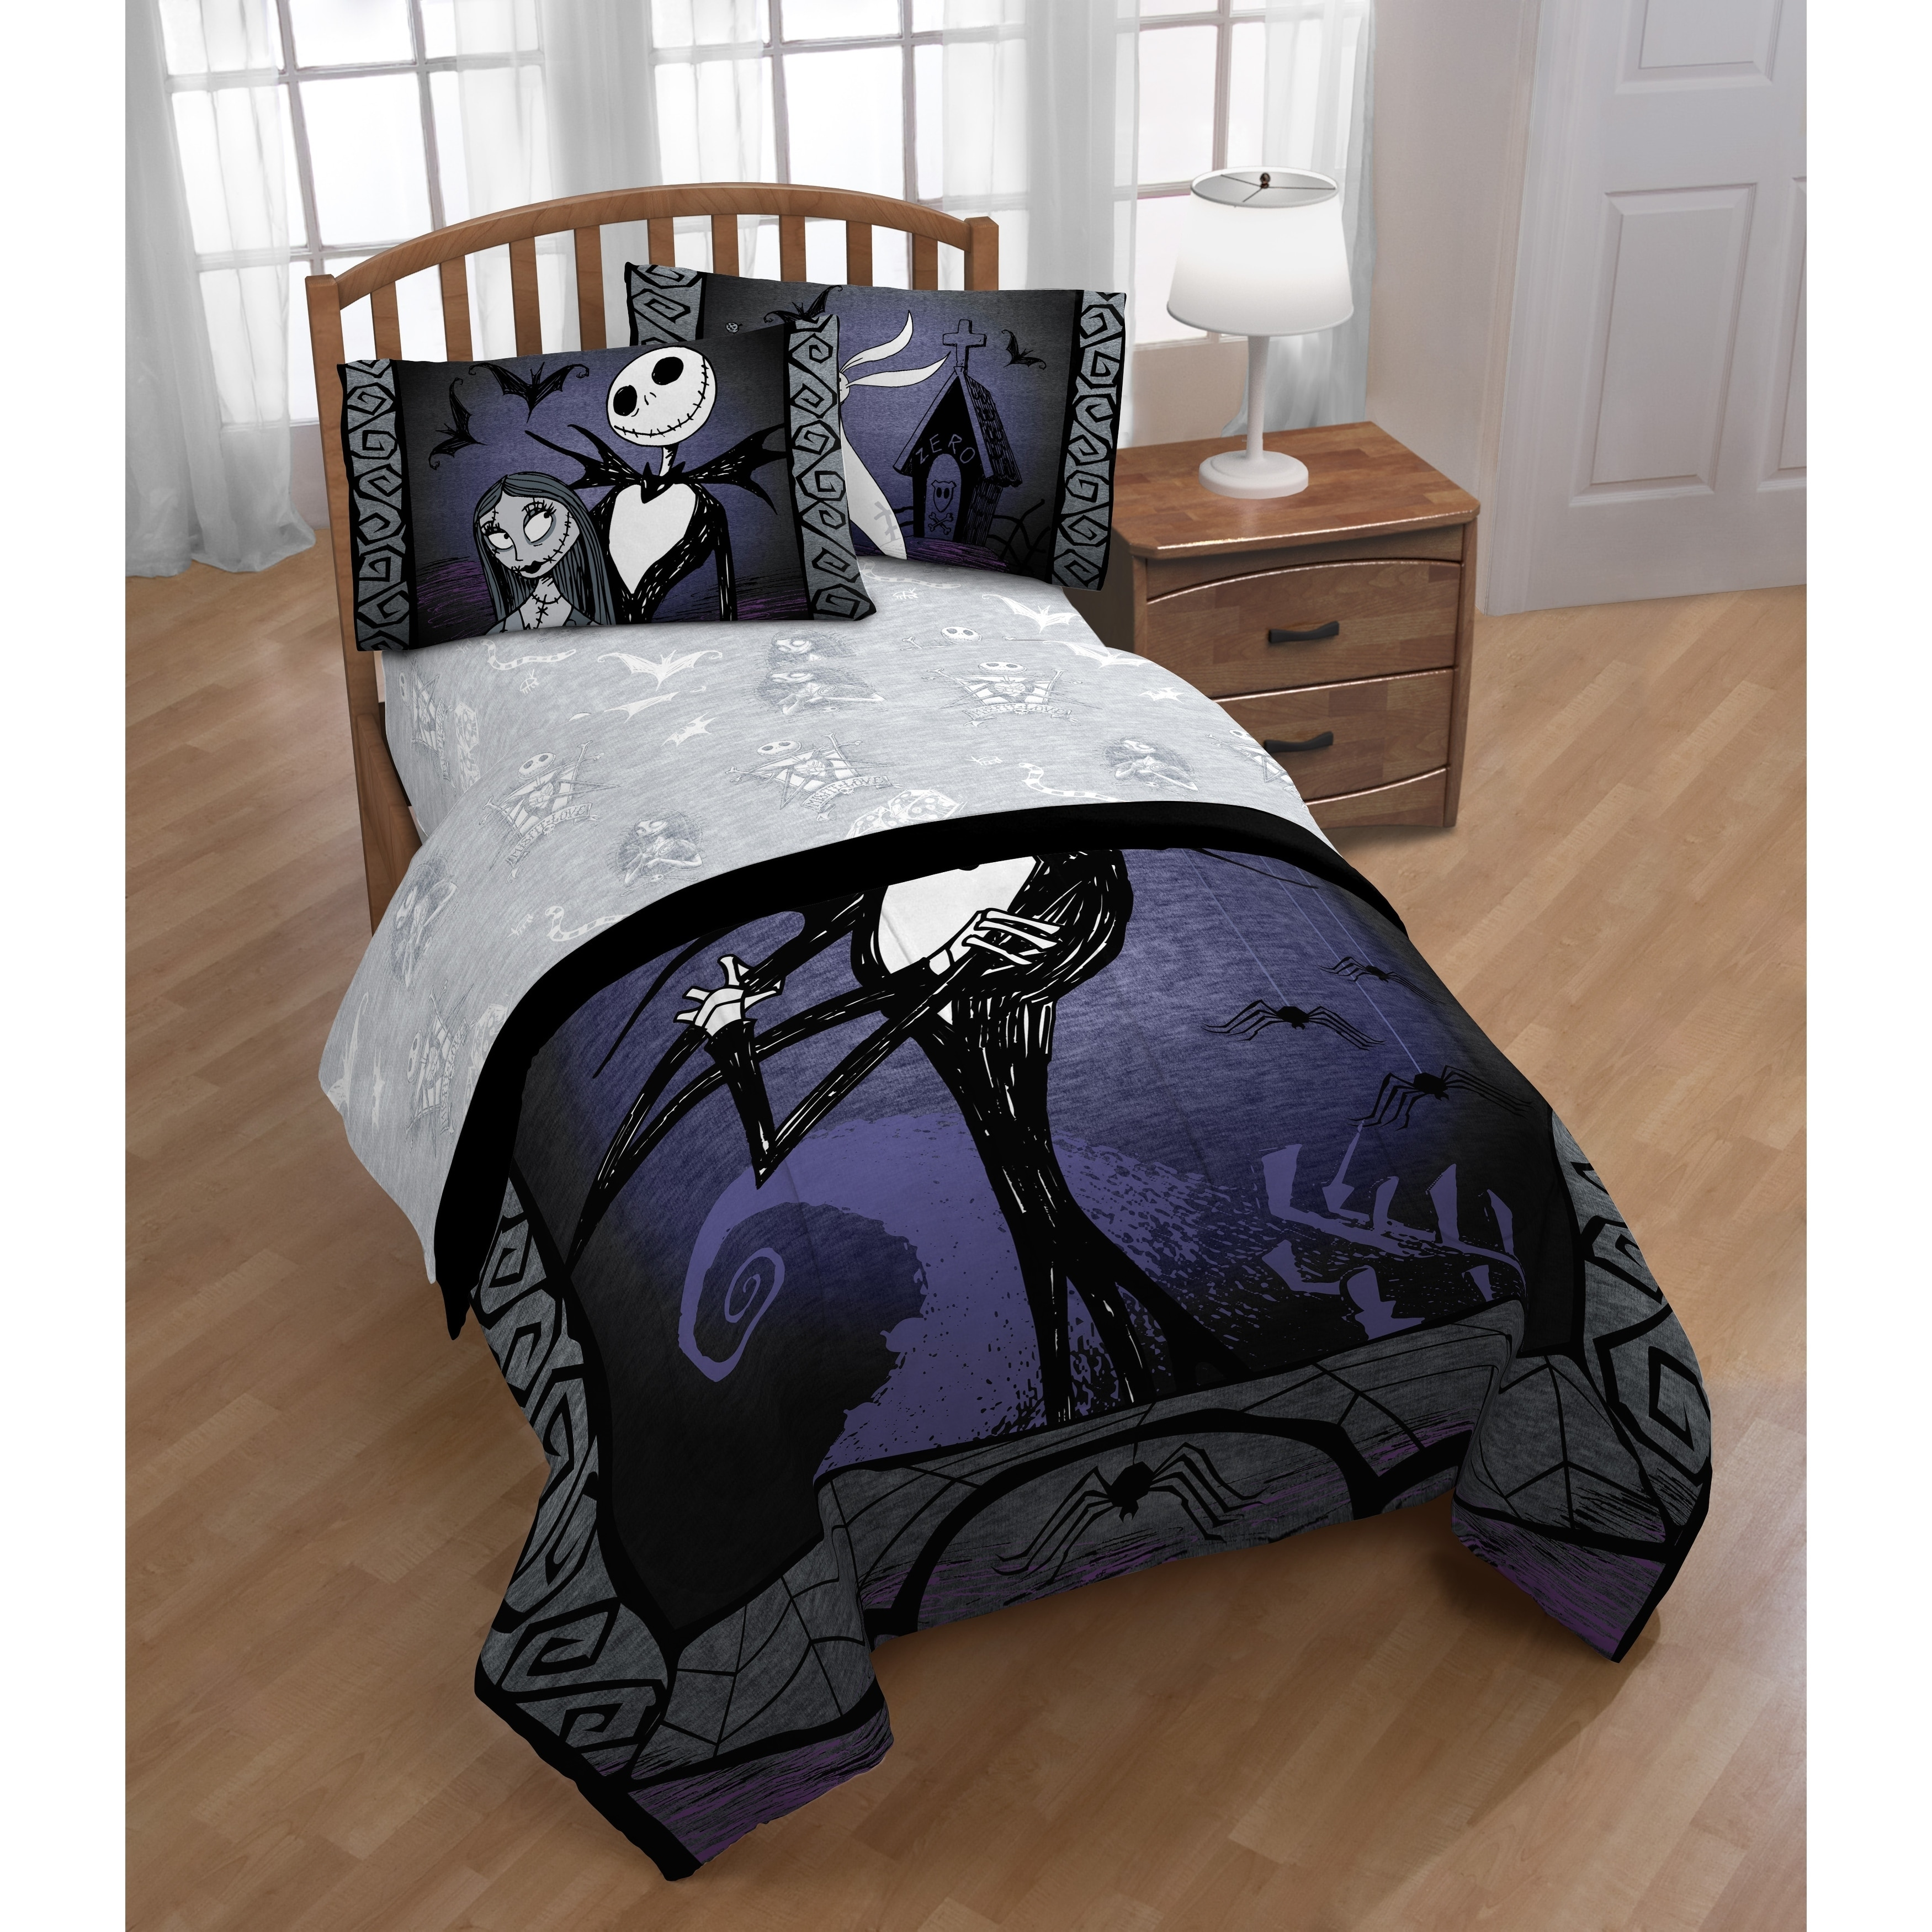 Shop Disney Nightmare Before Christmas Meant To Be 4 Piece Full